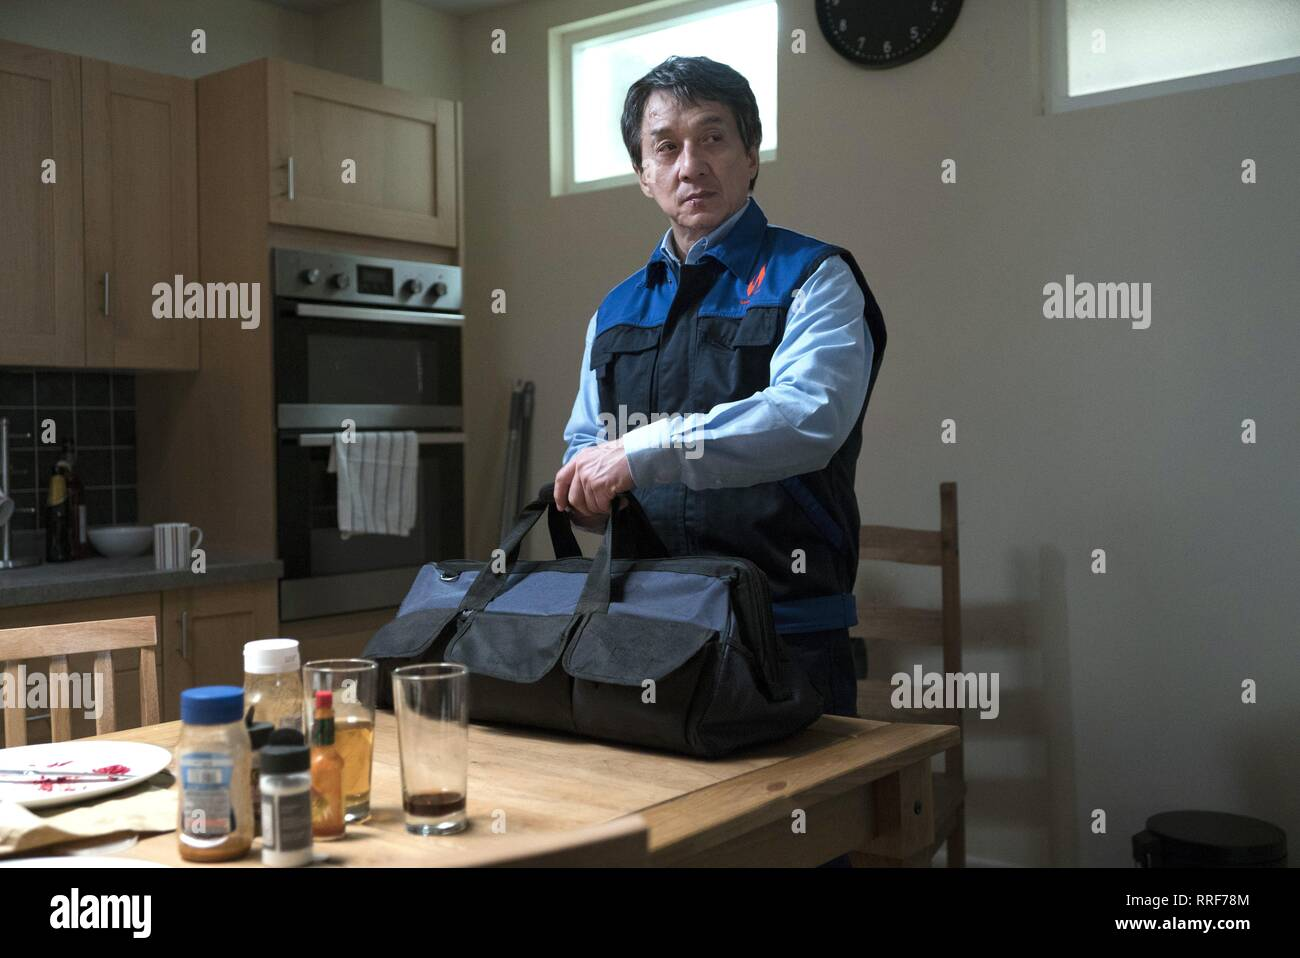 THE FOREIGNER, JACKIE CHAN, 2017 - Stock Image